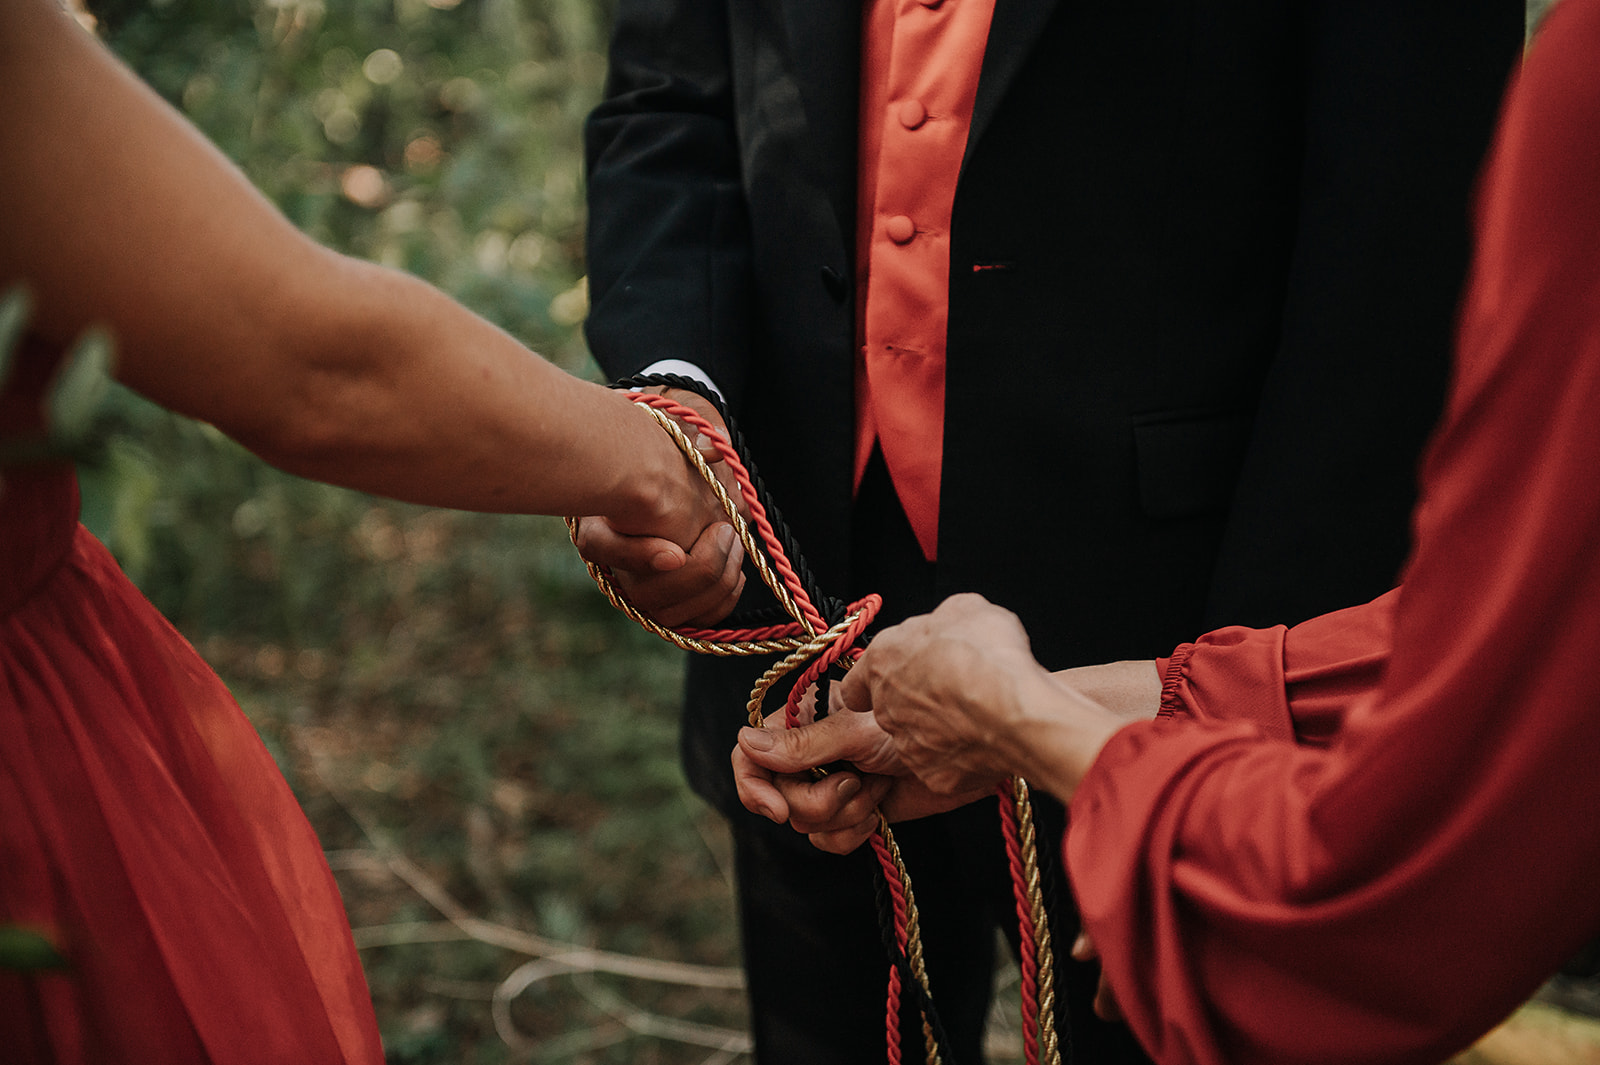 red wedding - handfasting ceremony - celebrant wedding ceremony